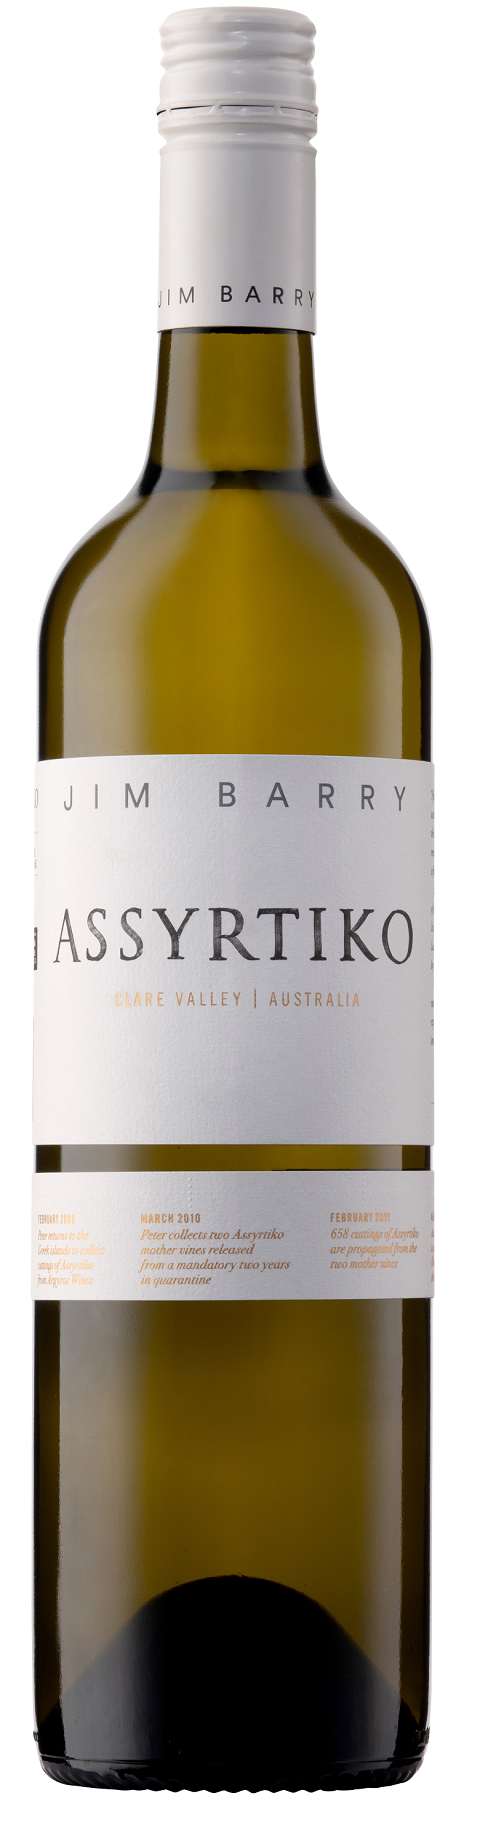 Jim Barry Assyrtiko_wineaffair